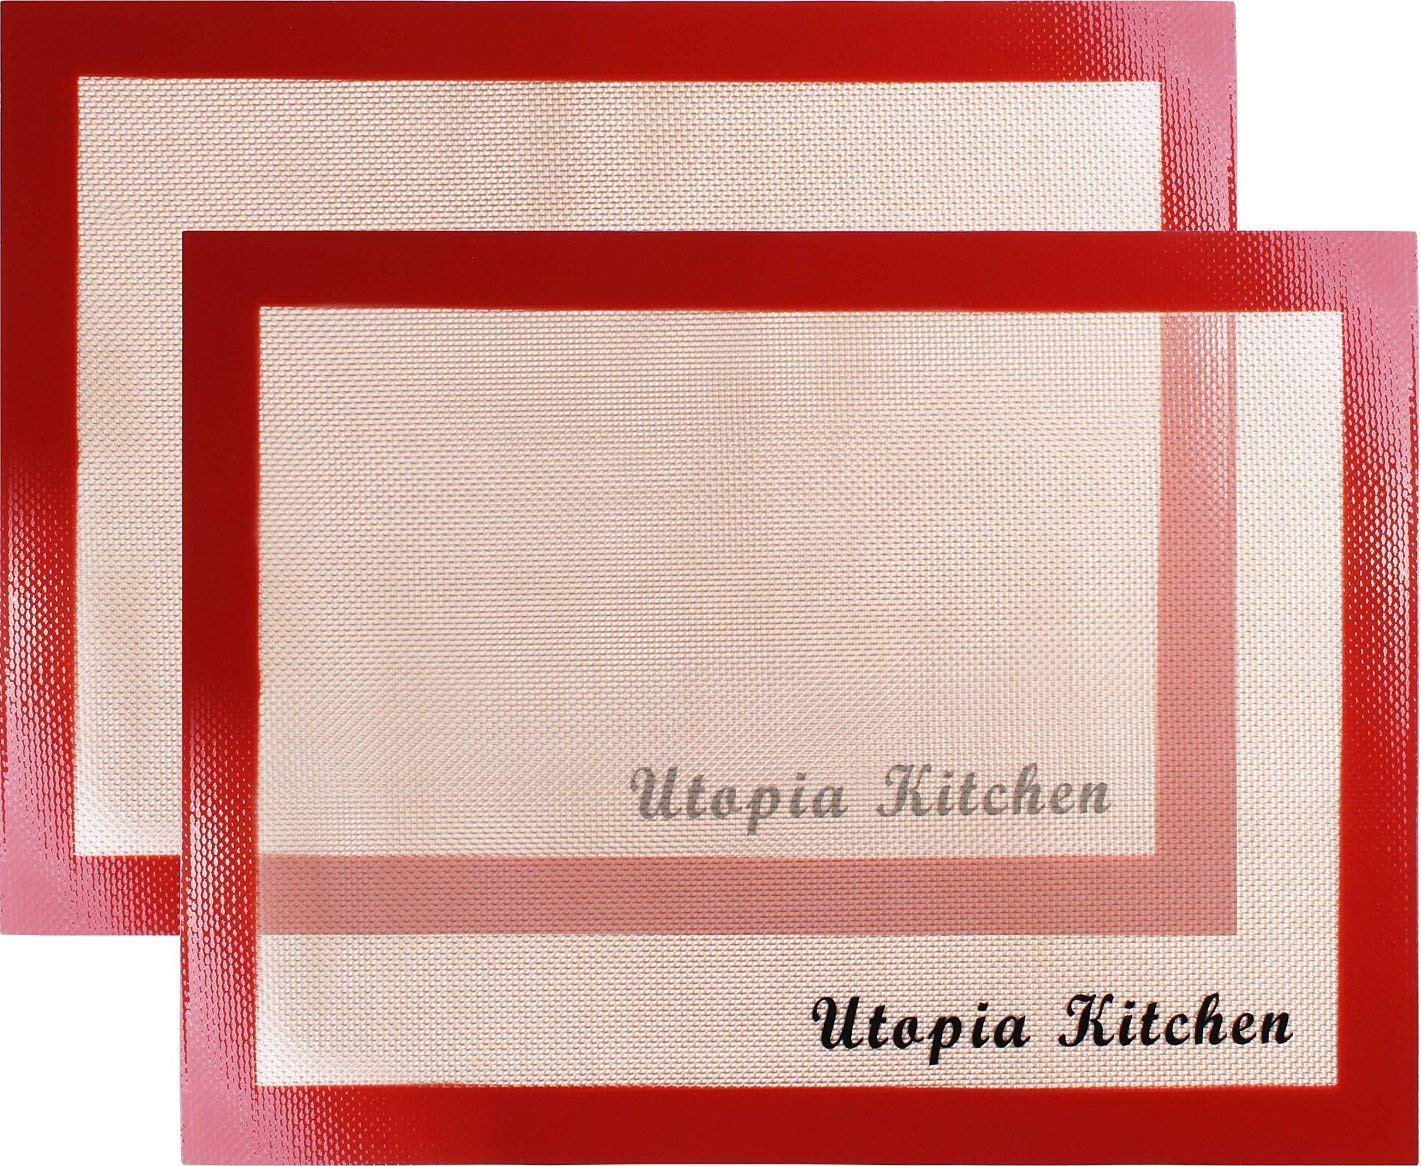 Utopia Kitchen Silicon Mat for Baking and Cooking - 2 Pack Red - Professional Grade Non-Stick Best for Cookies, Pizzas, Pretzels and More UK0096